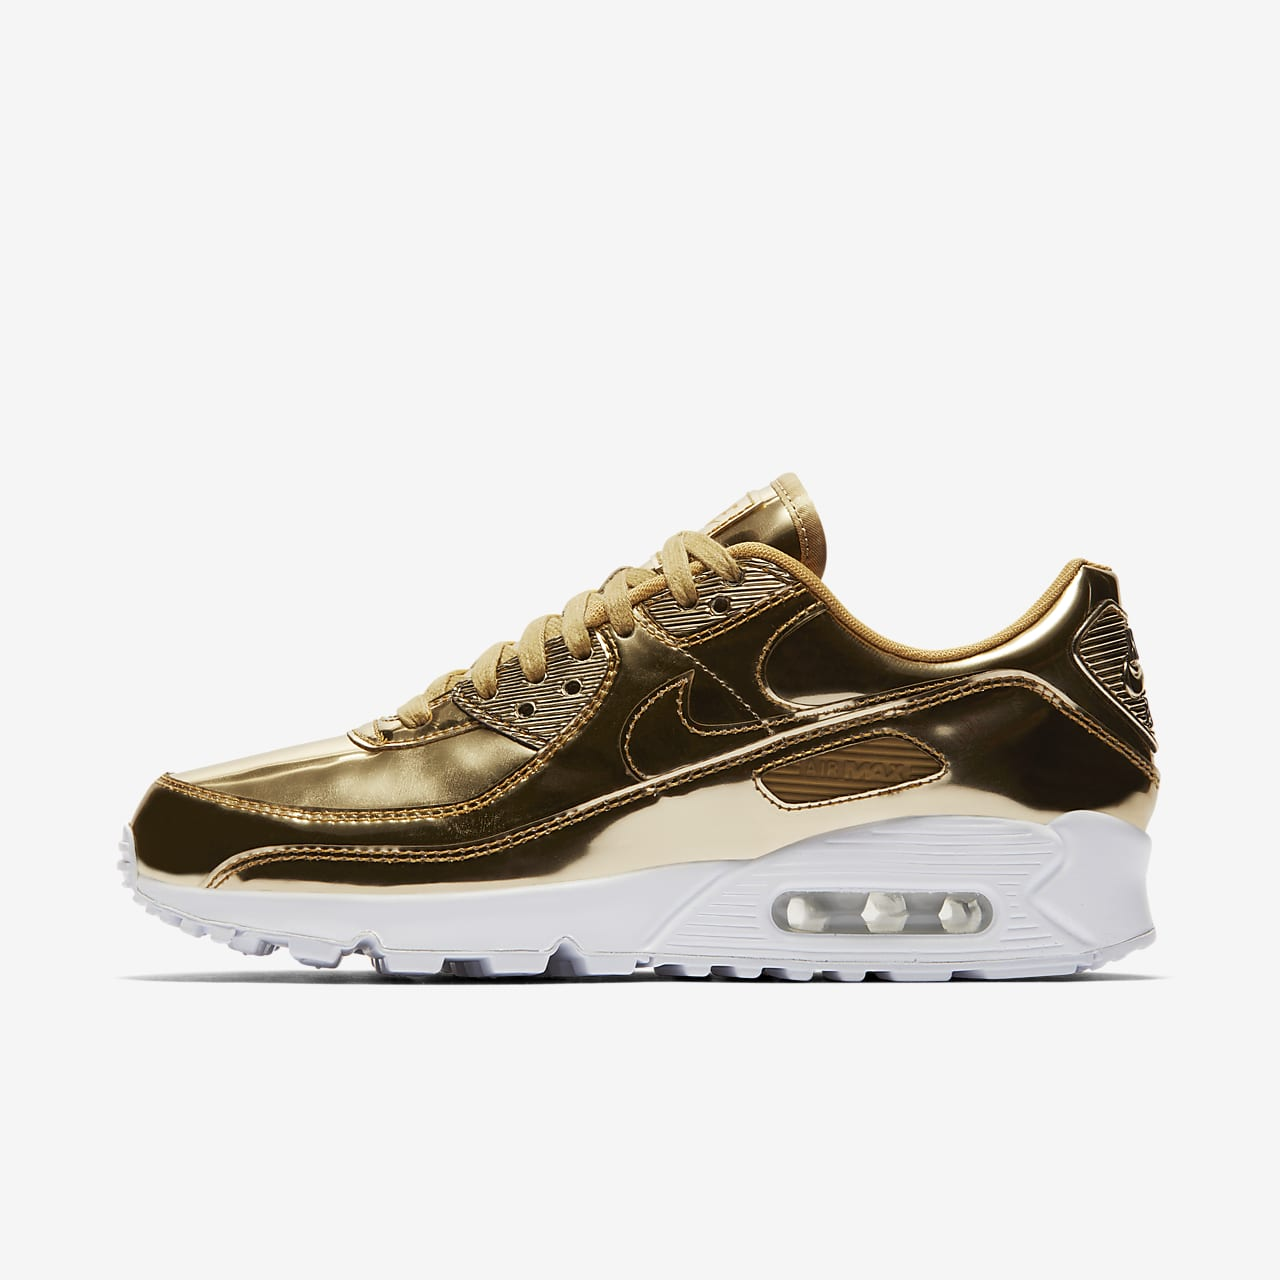 Nike Air Max 90 SP Shoe